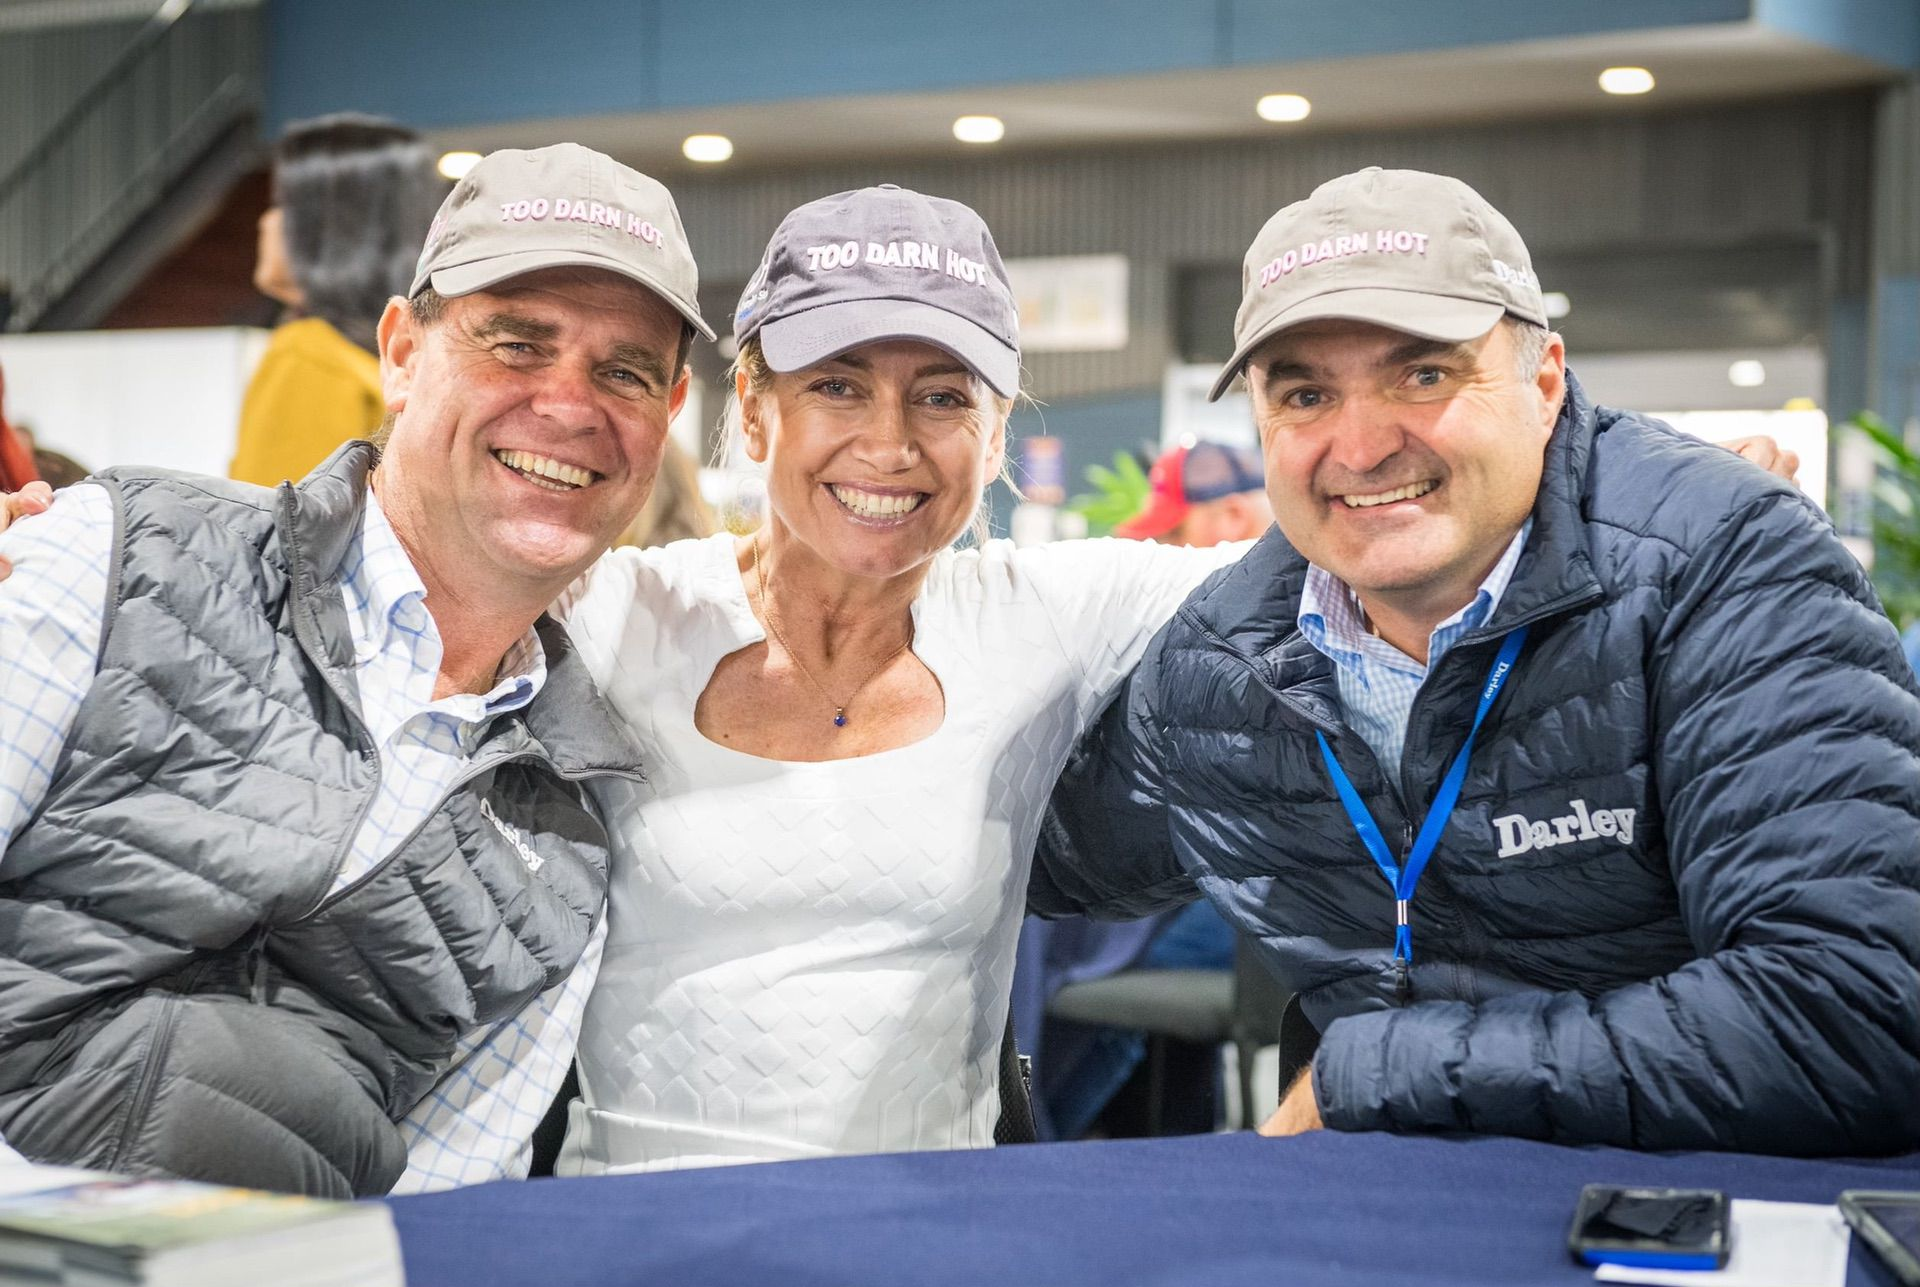 Alastair Pulford, Catriona and Vin Cox of Darley